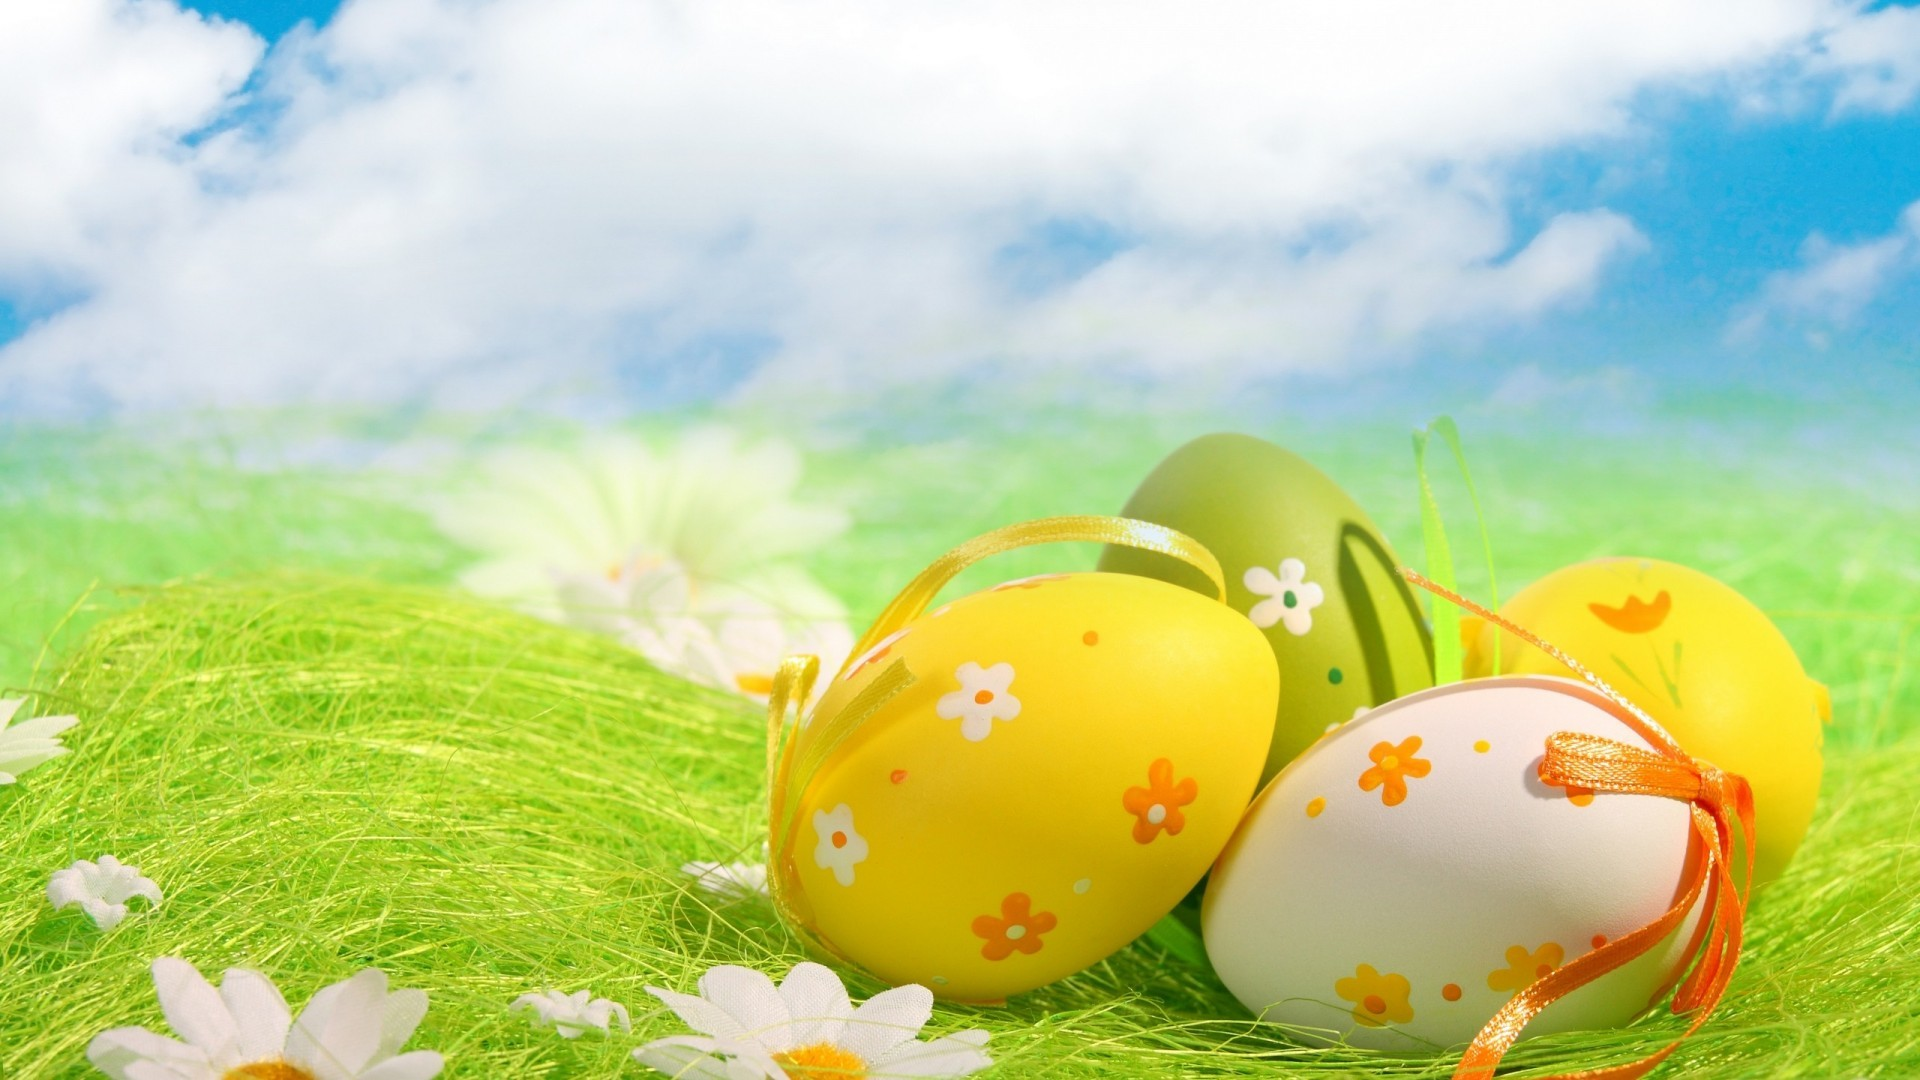 Res: 1920x1080, Beautiful Easter eggs under blue sky HD wallpaper.